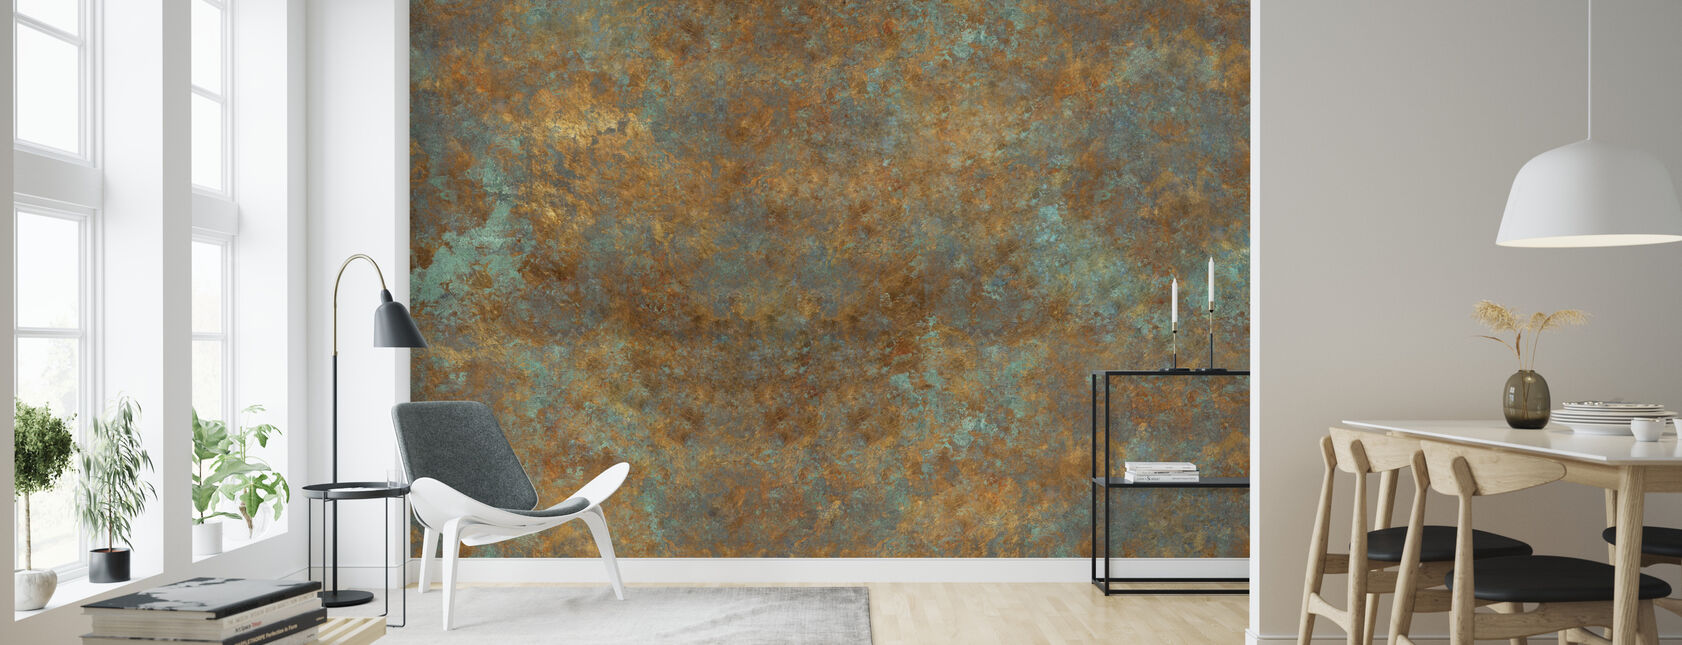 Vintage Bronze Background - Wallpaper - Living Room